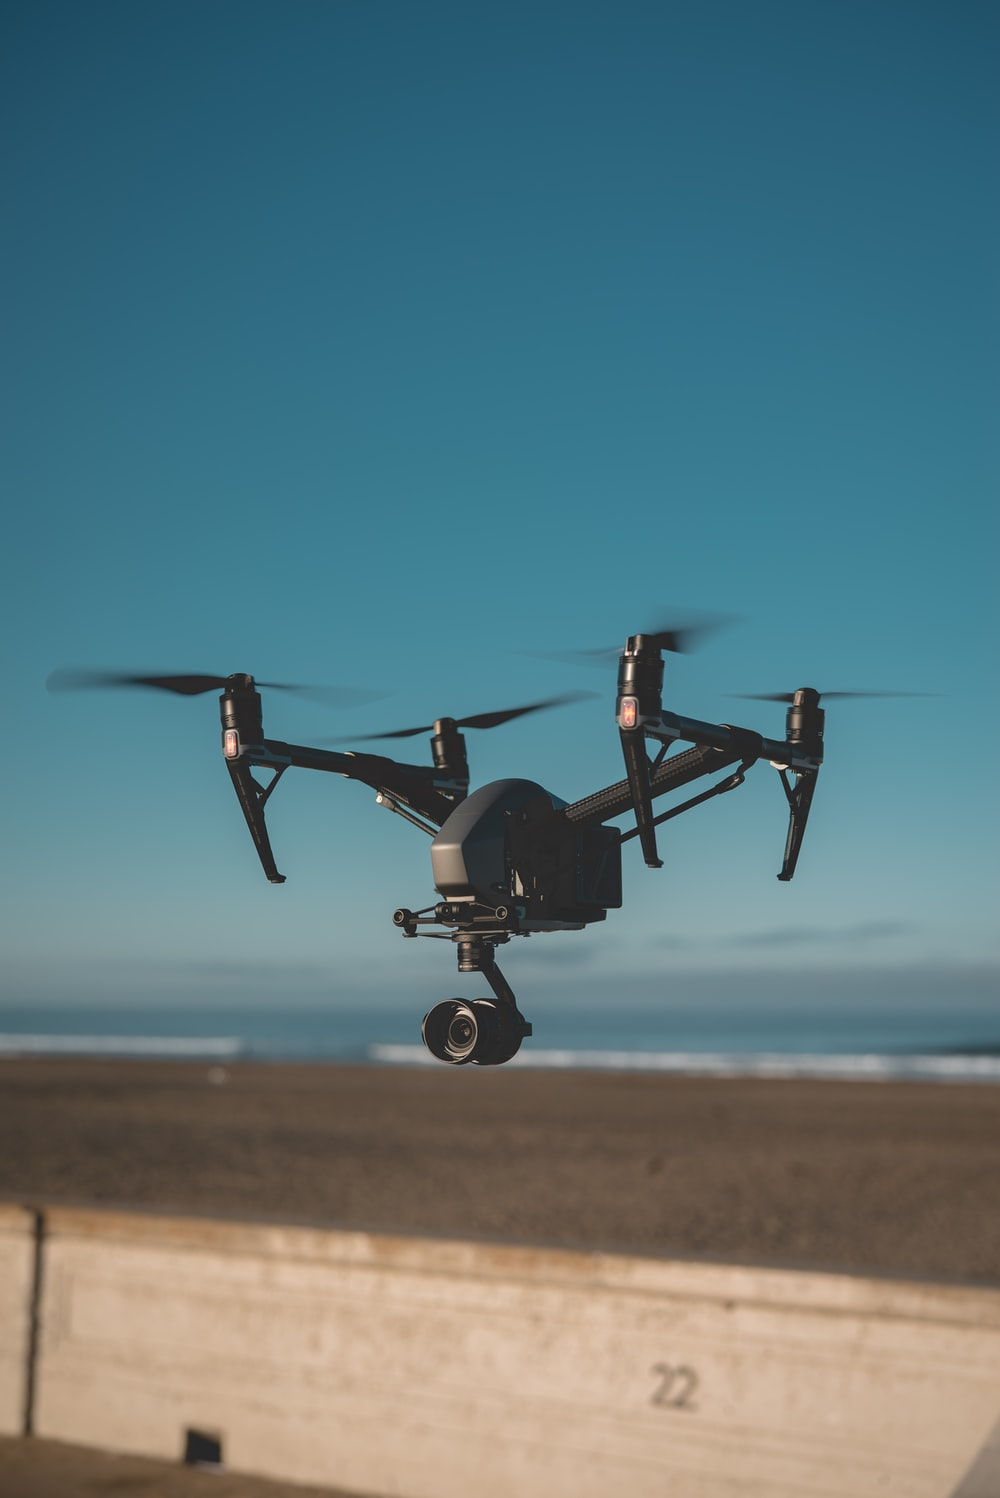 black quadcopter drone flying